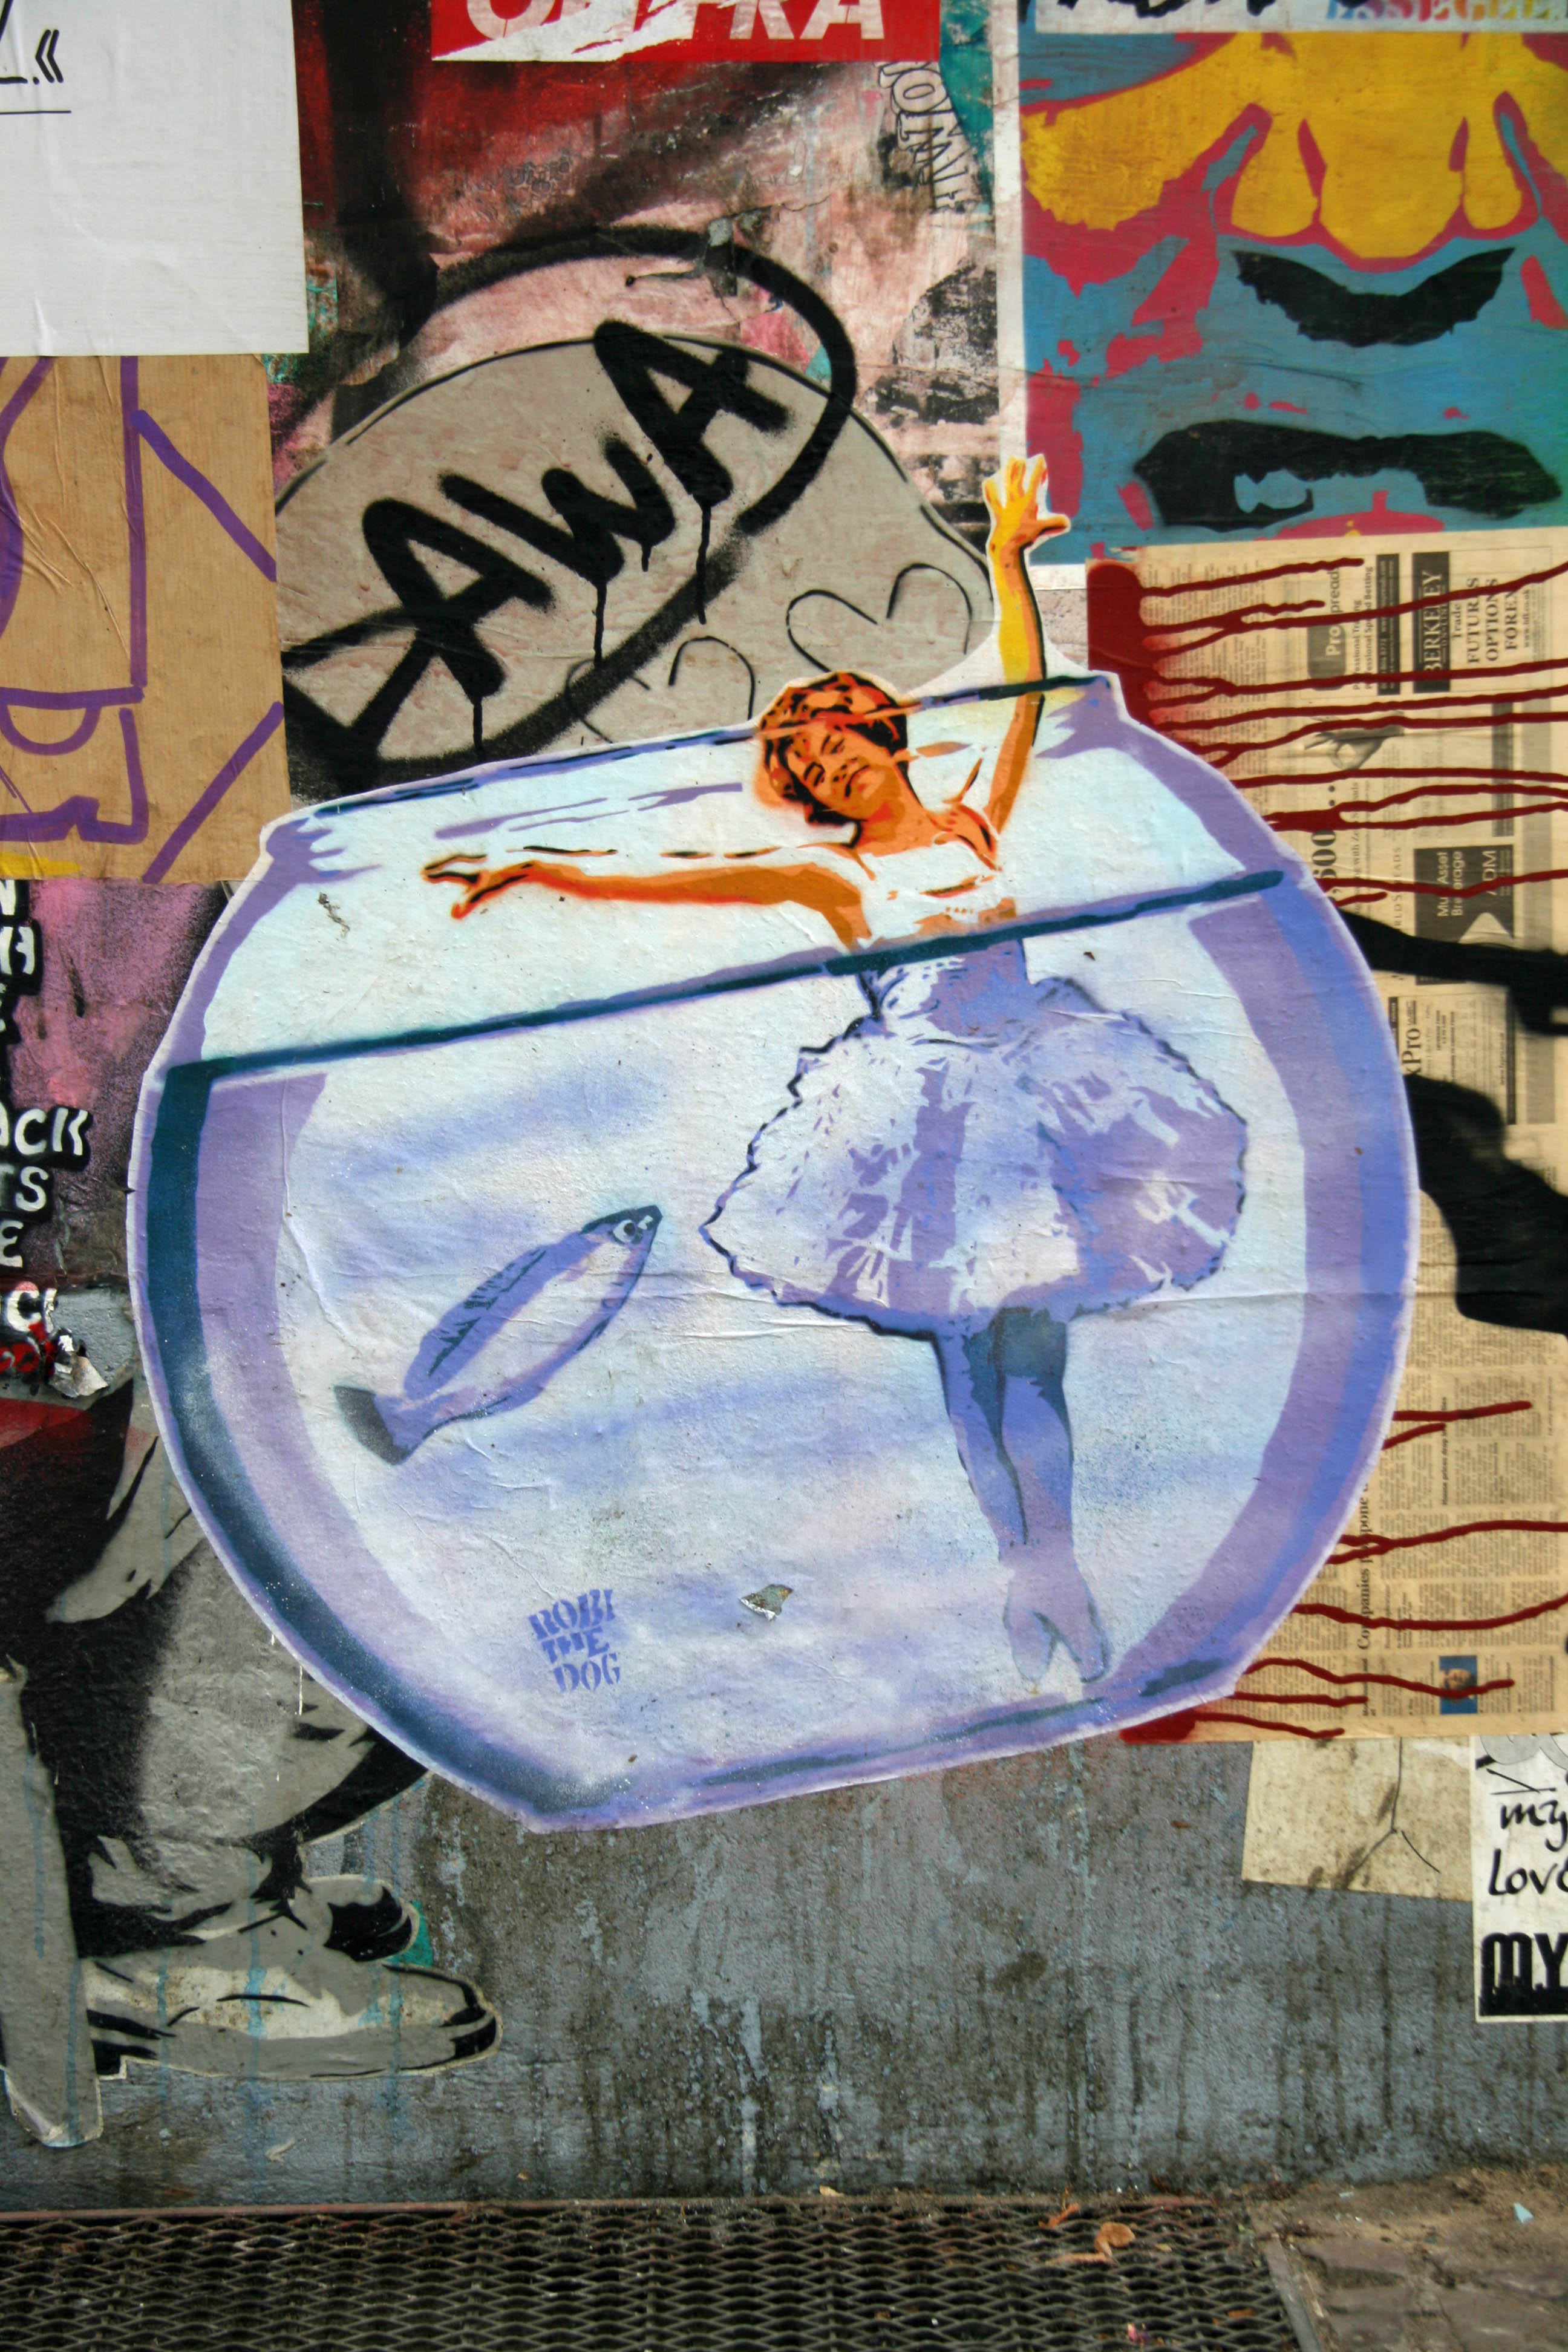 A Dancer in a Goldfish Bowl: Street Art by Robi The Dog in Berlin